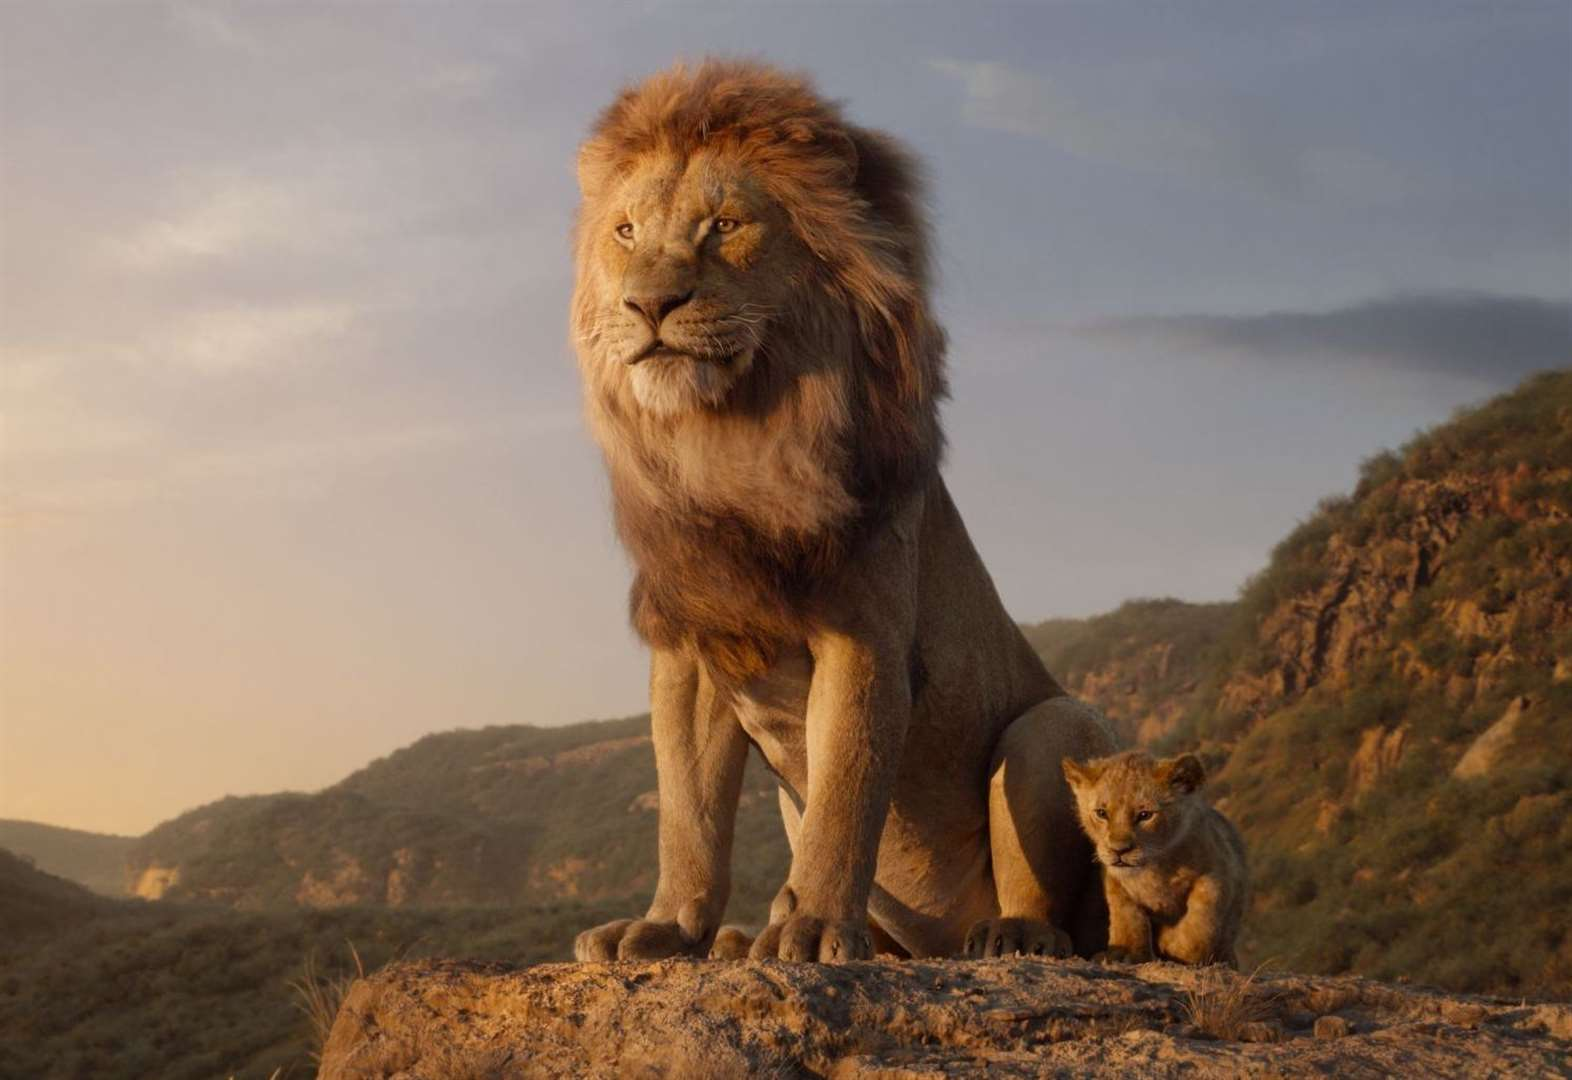 Does The Lion King live up to the hype 25 years on?